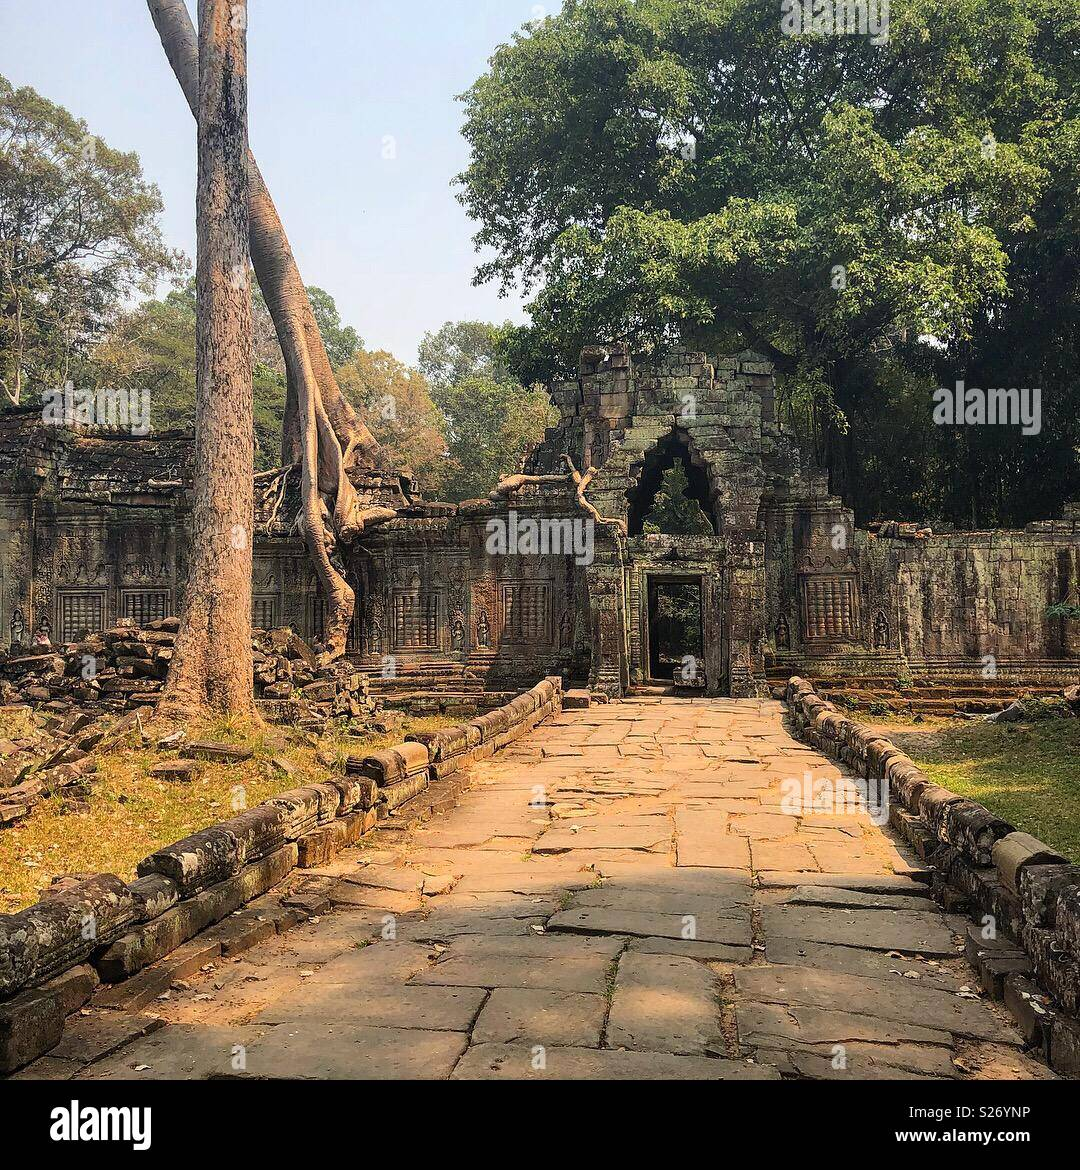 Angkor wat temple ruins. Path leading to archway with a tall tree and empty scene - Stock Image